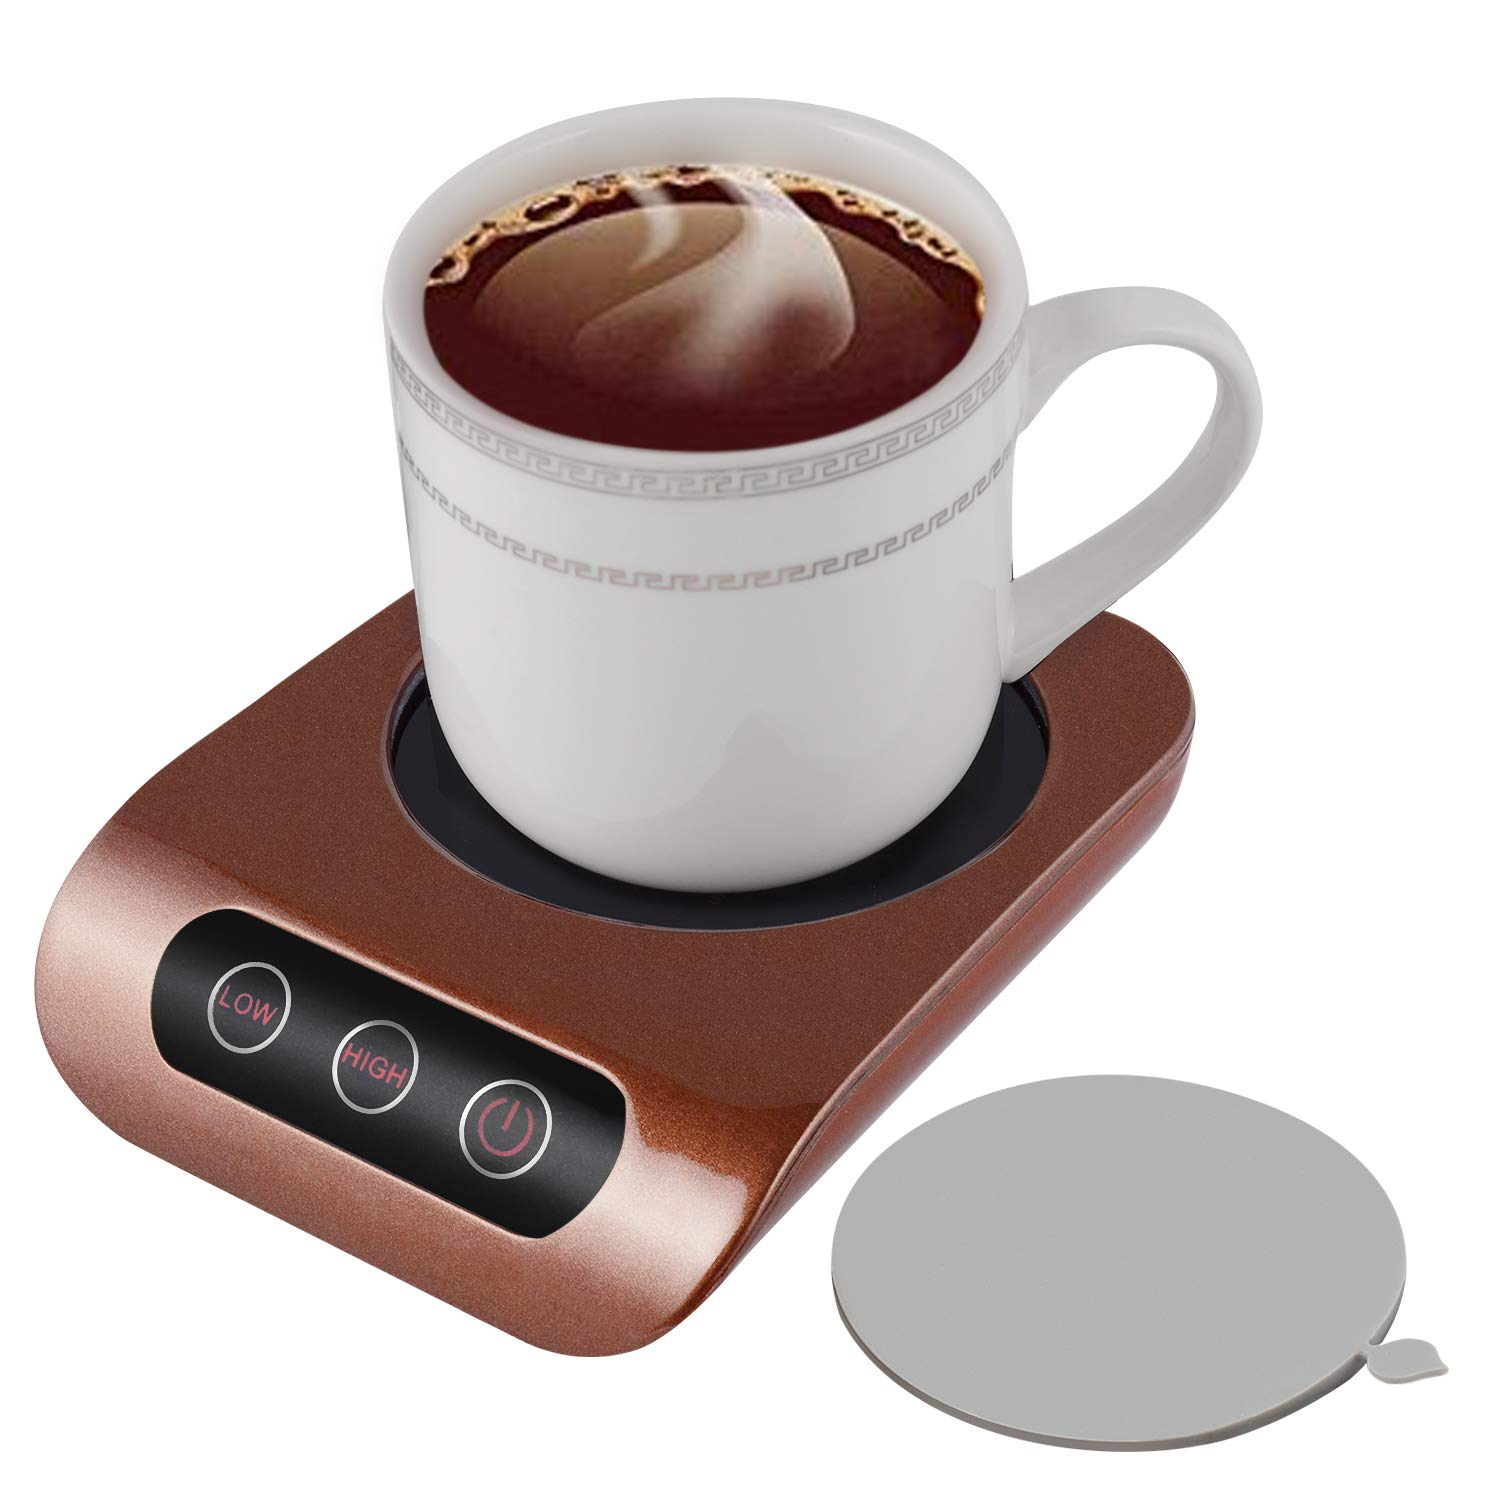 KUWAN Coffee Mug Warmer - Desktop Beverage Warmer - Electric Cup Warmer Tea Milk for Office Home 110V 30W Best Gift for Coffee Lovers FX-H1